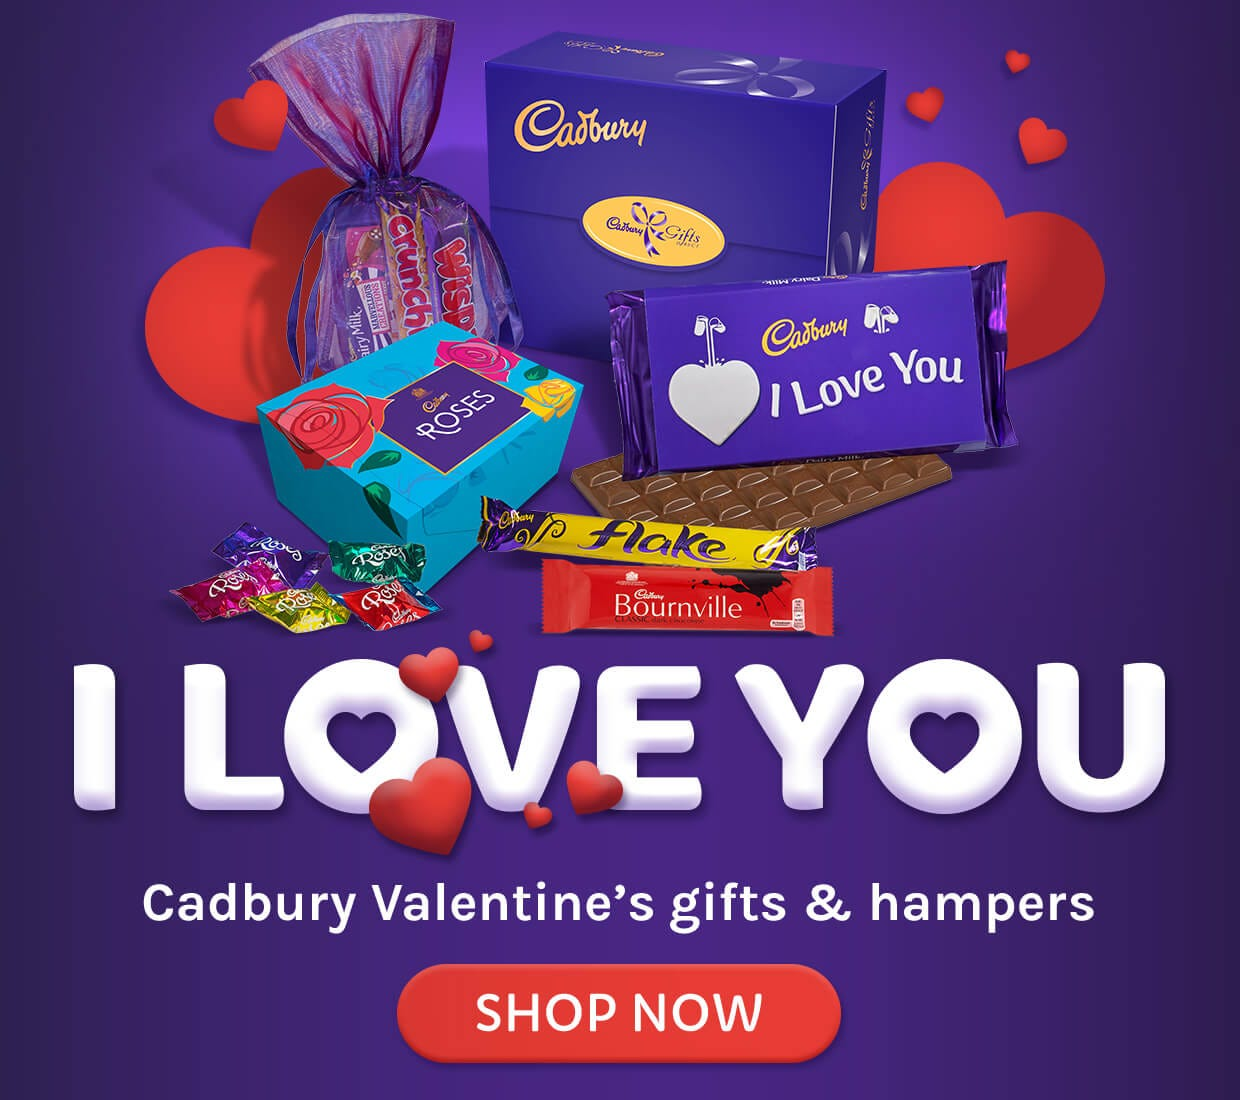 Valentine's Chocolate Hampers and gifts